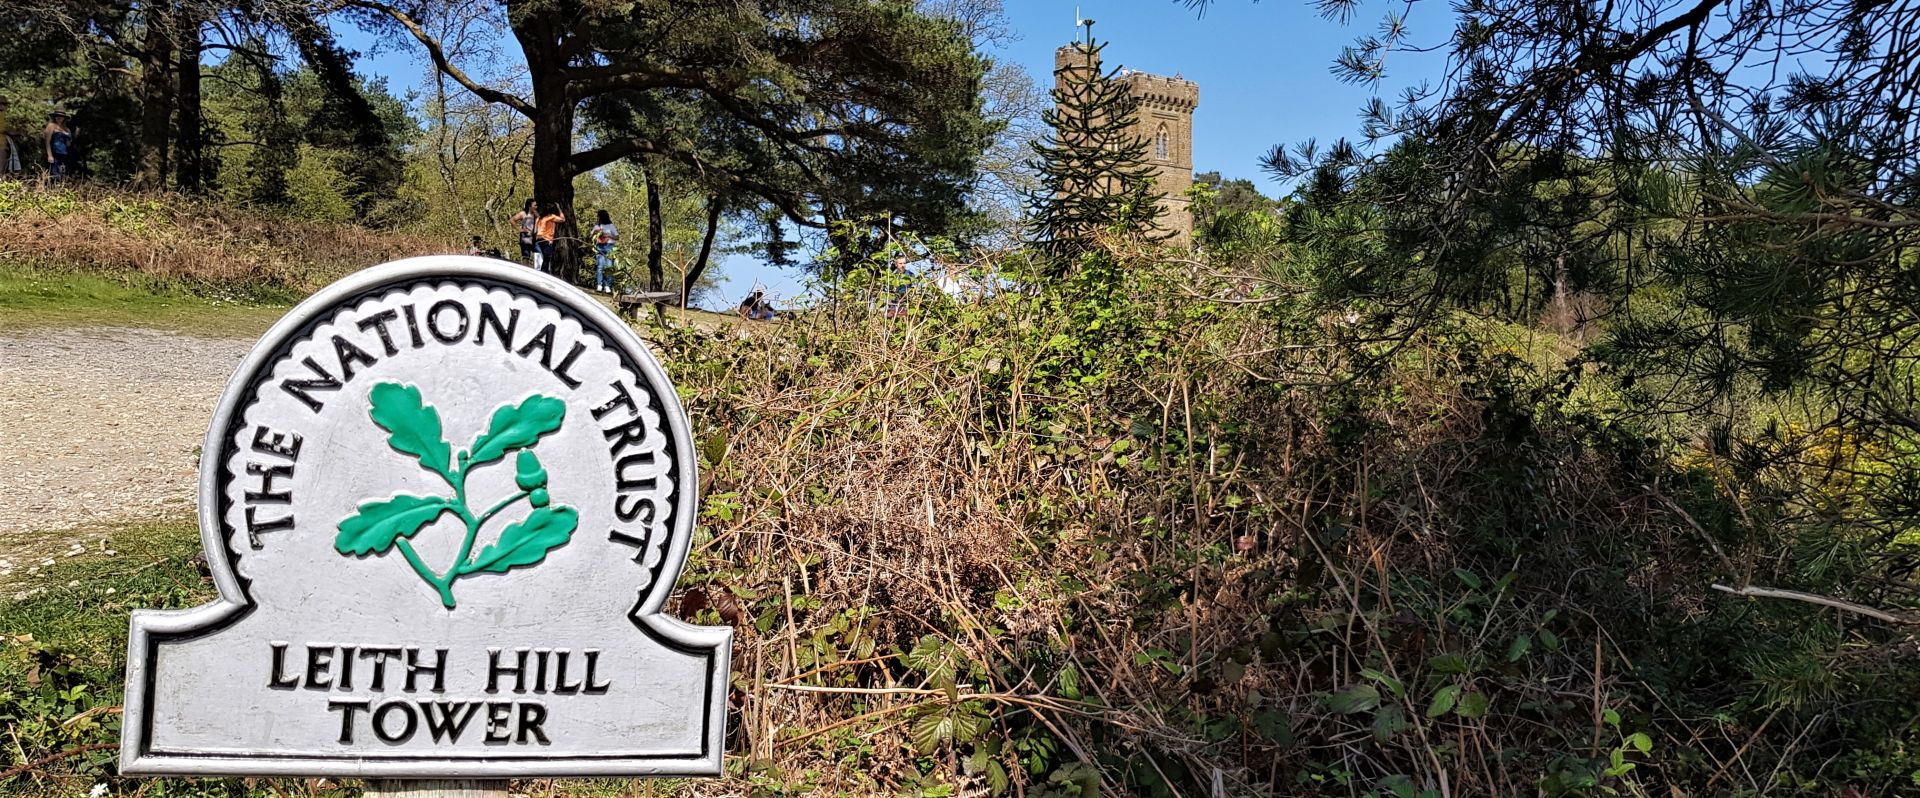 Leith Hill Tower landscape.jpg